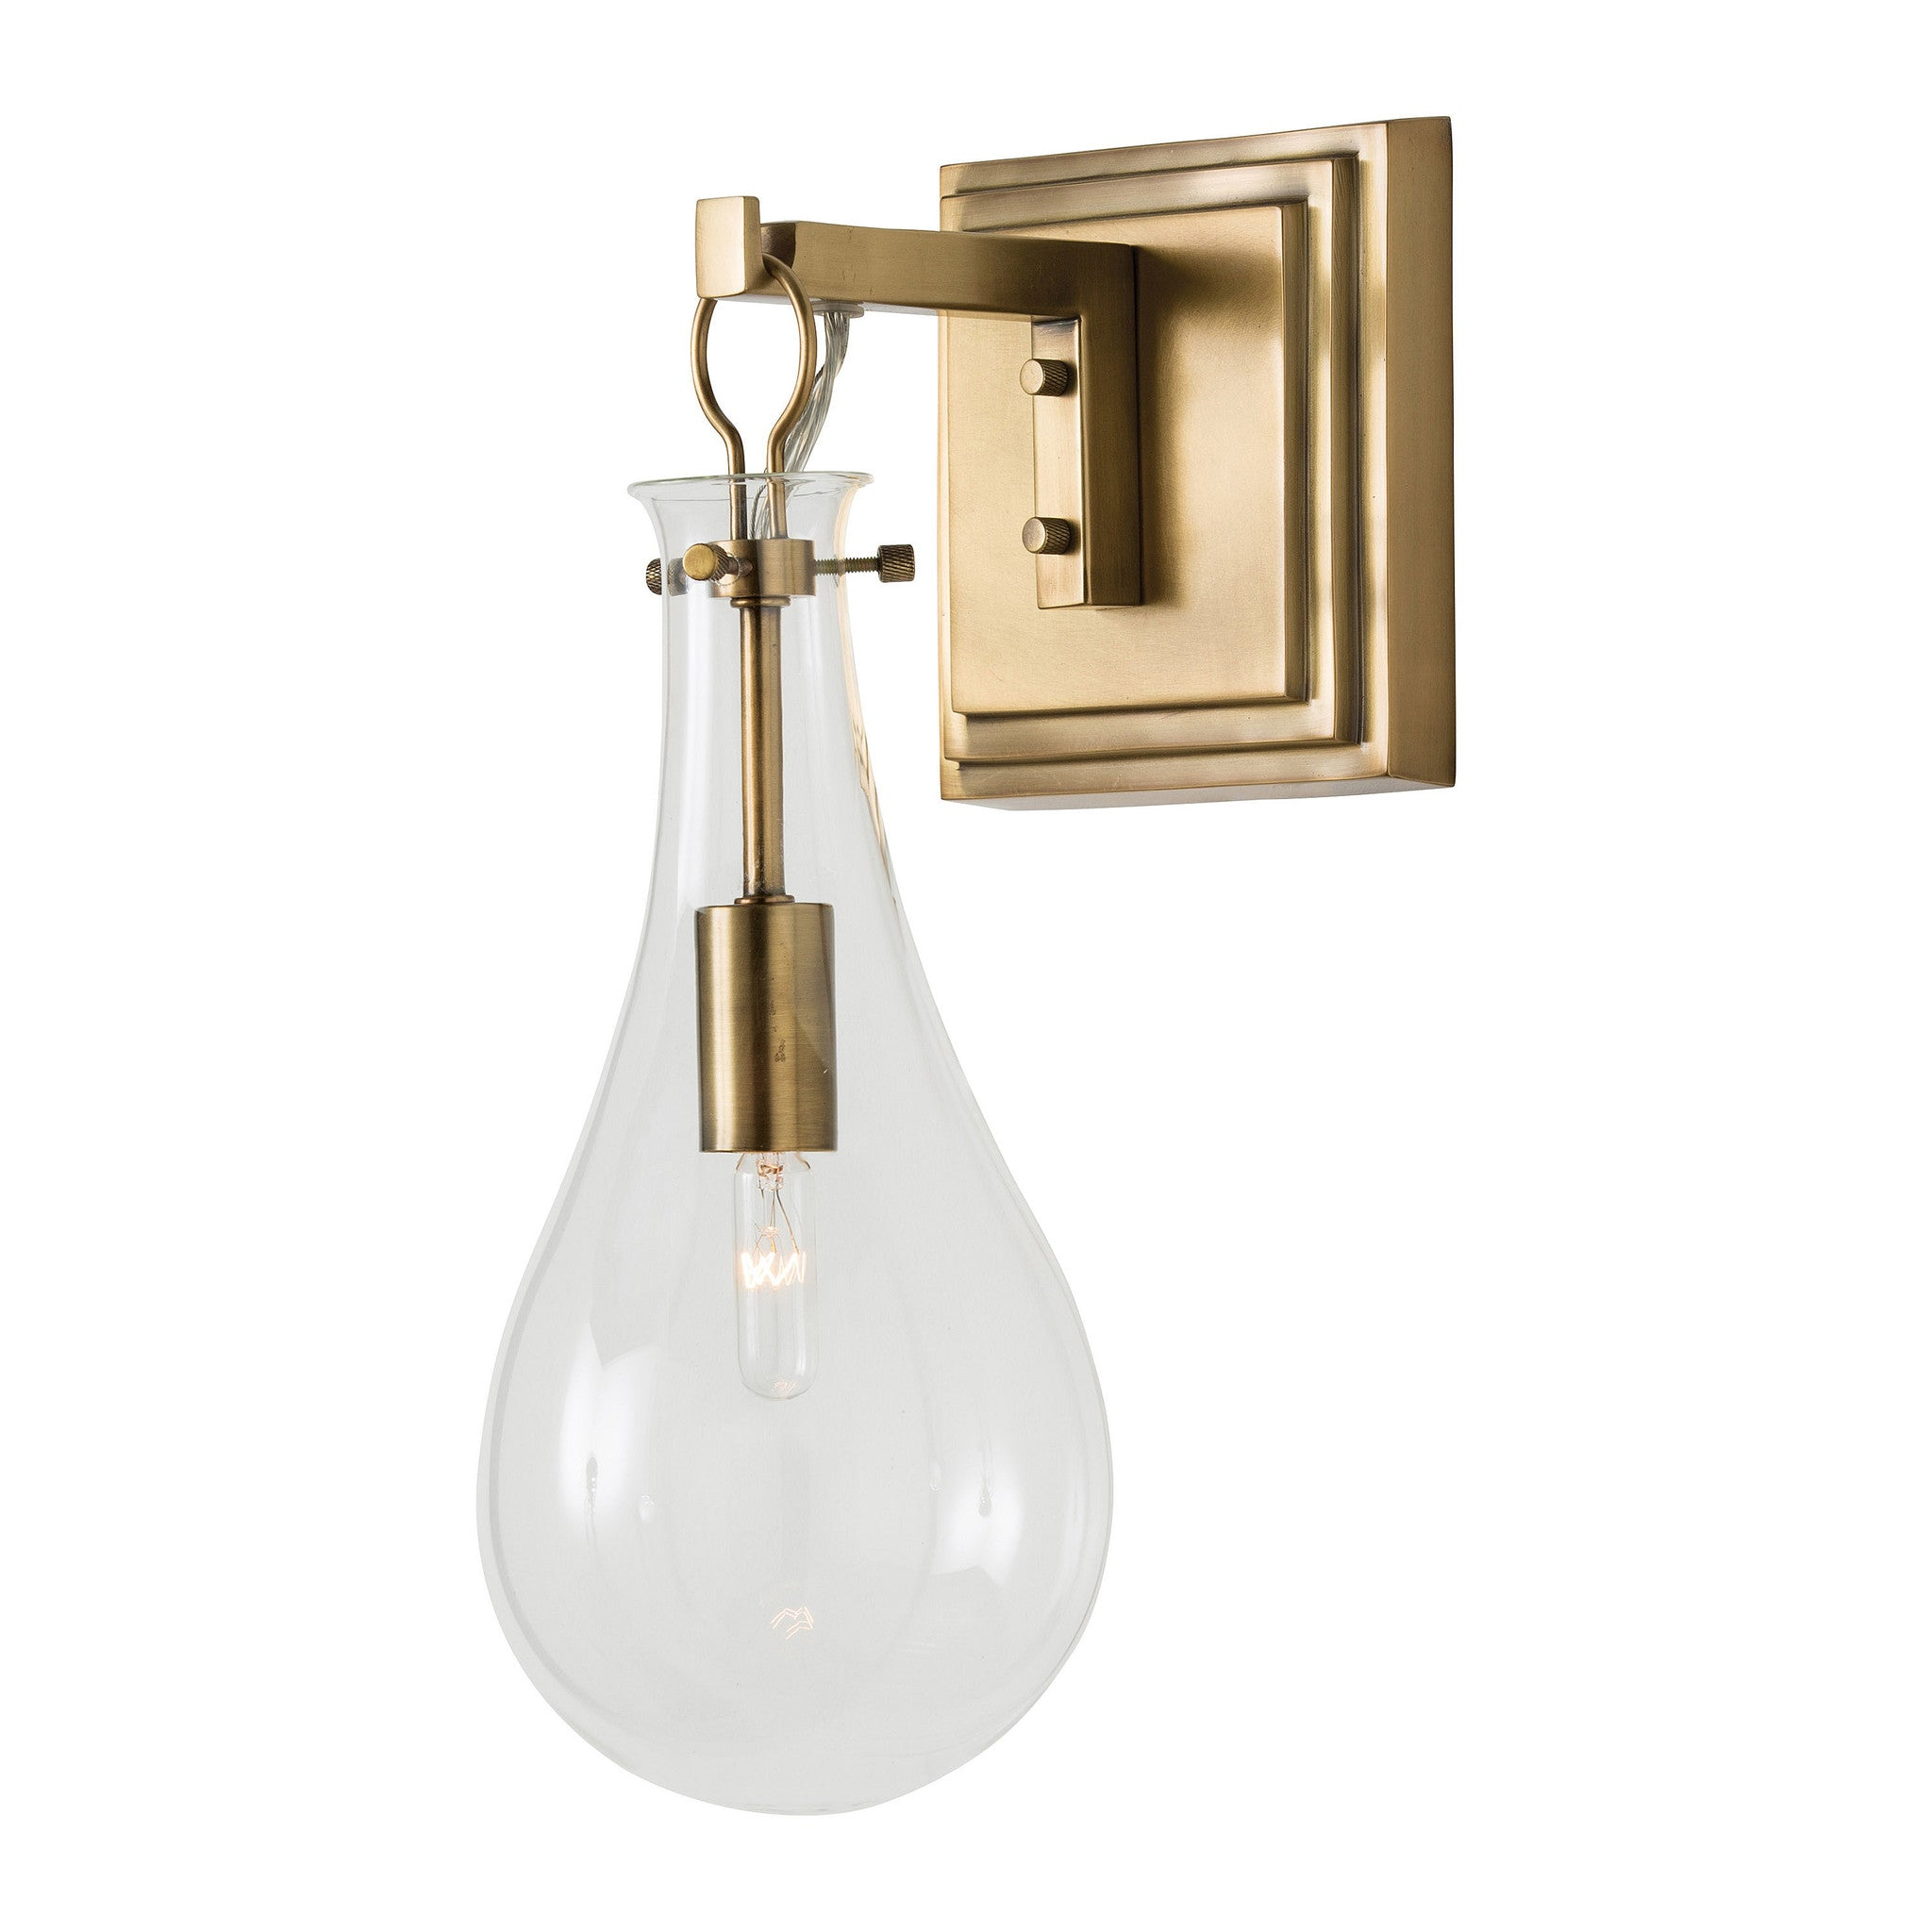 Sabine Wall Sconce in Antique Brass by Arteriors Home 49986